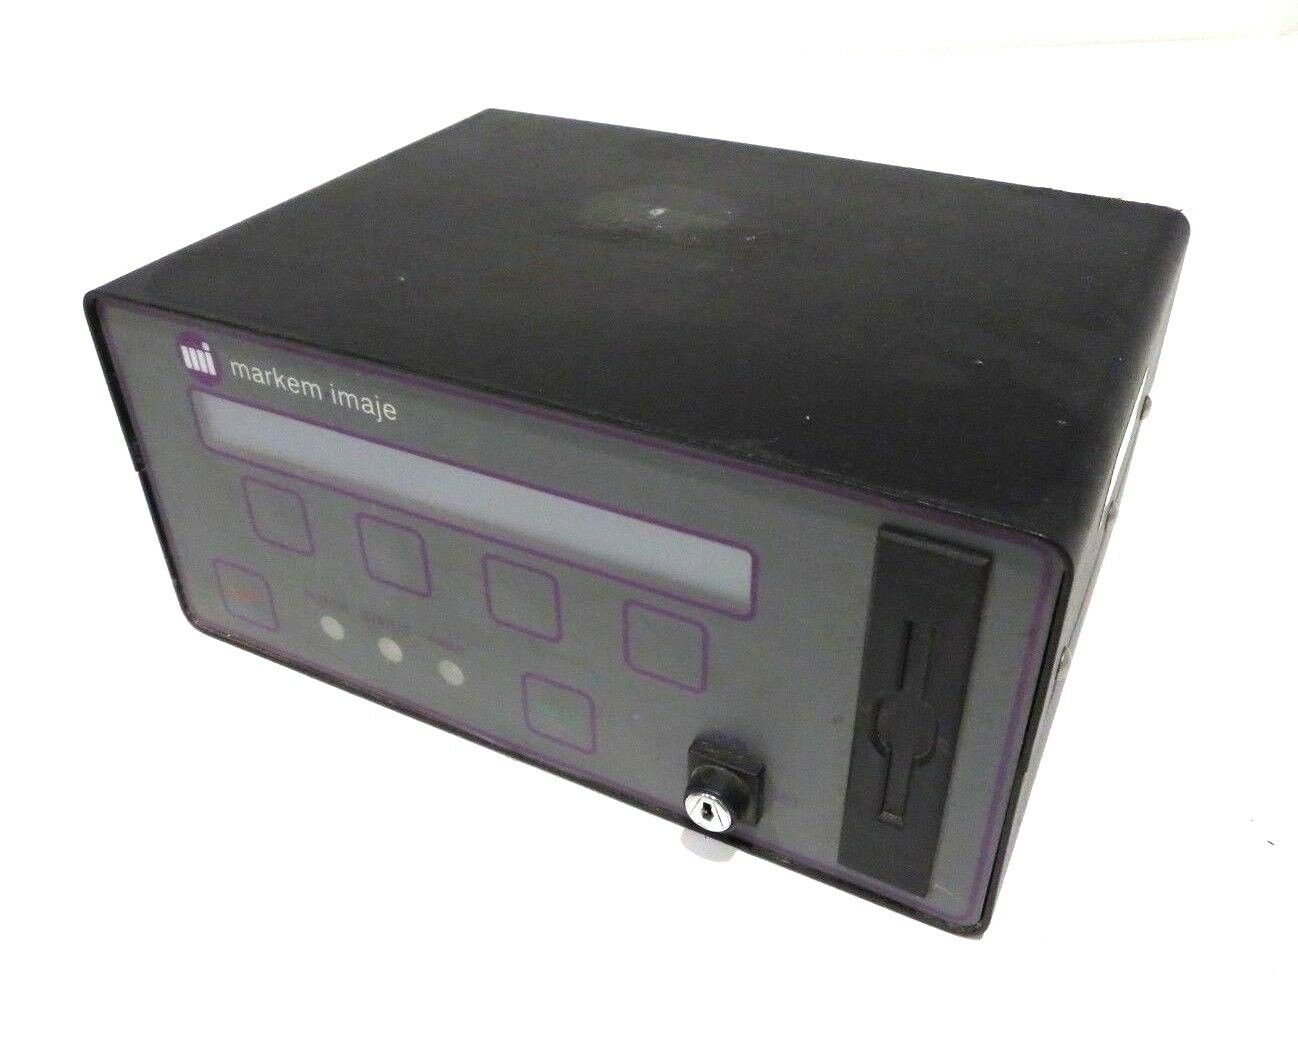 Used Markem Imaje Smartdate Controller 1 of 3Only 1 available ...